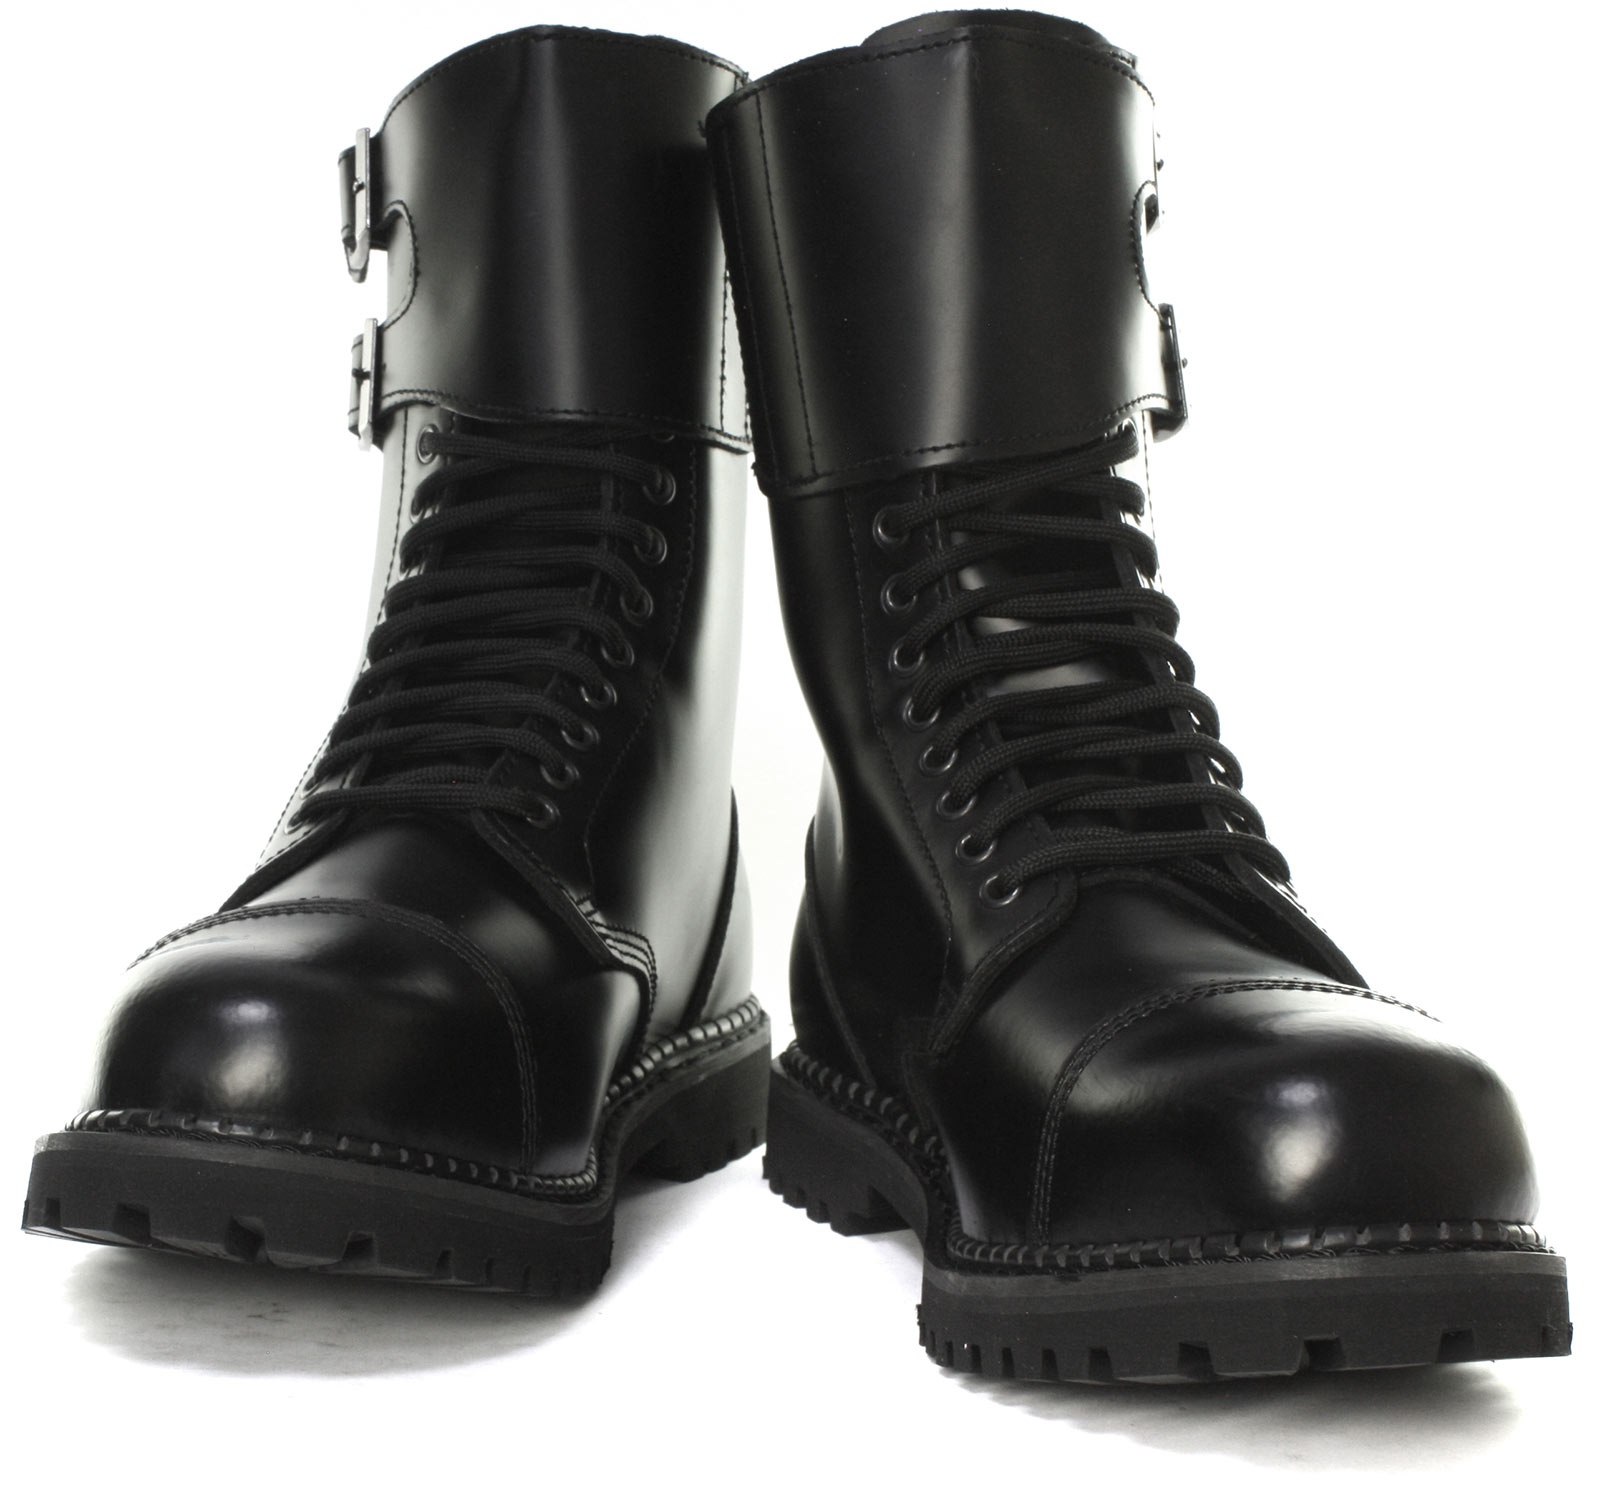 Grinders-Camelot-CS-14-Eyelet-Twin-Buckle-Unisex-Steel-Toe-Boots-ALL-SIZES thumbnail 2